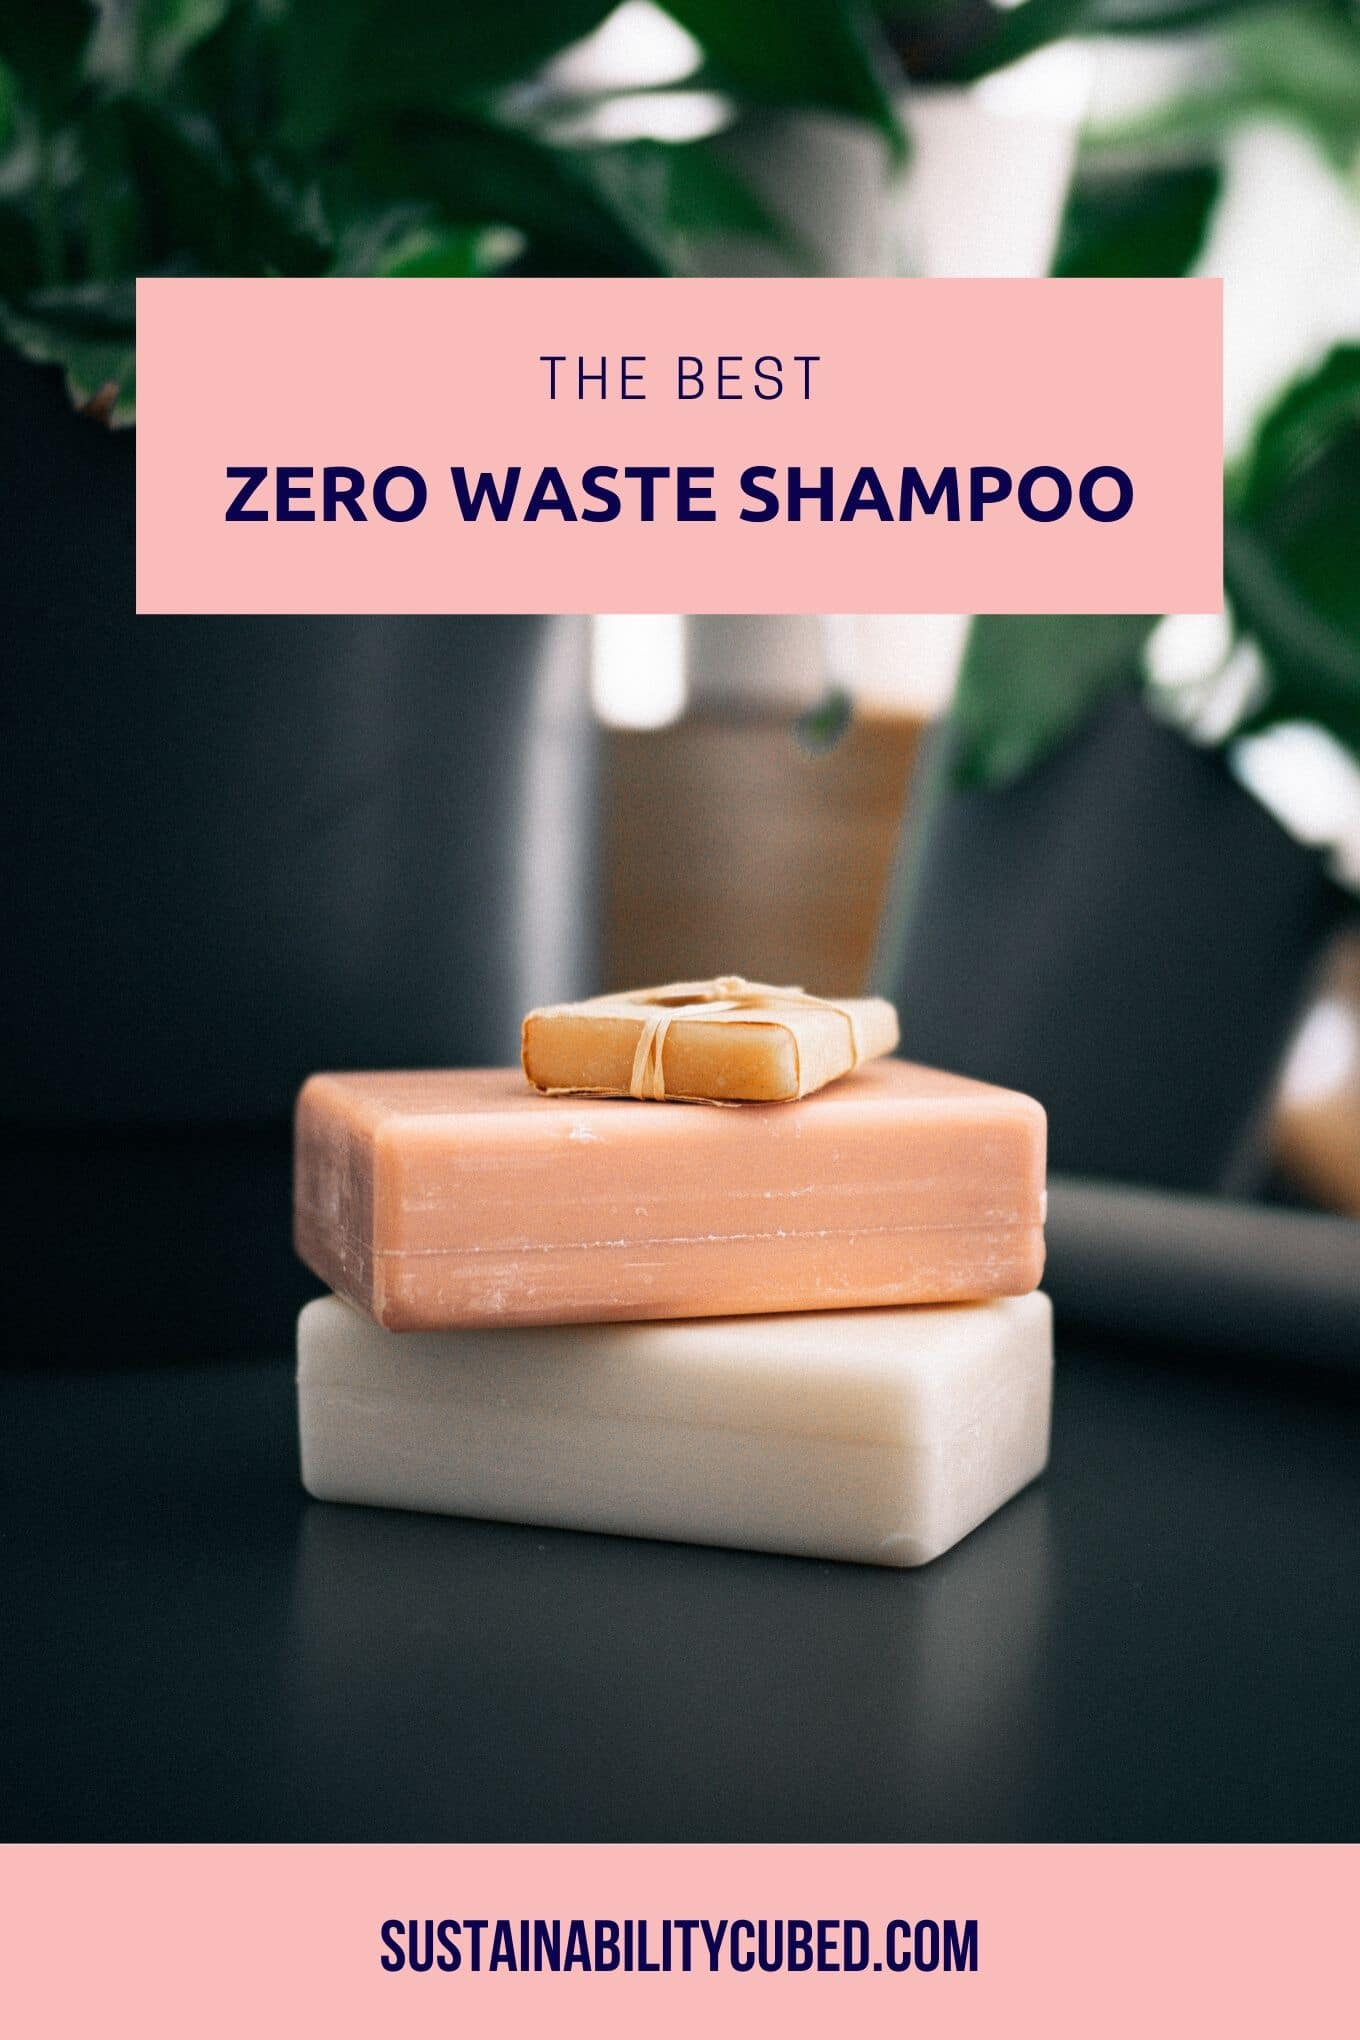 The Most Sustainable Zero Waste Shampoo